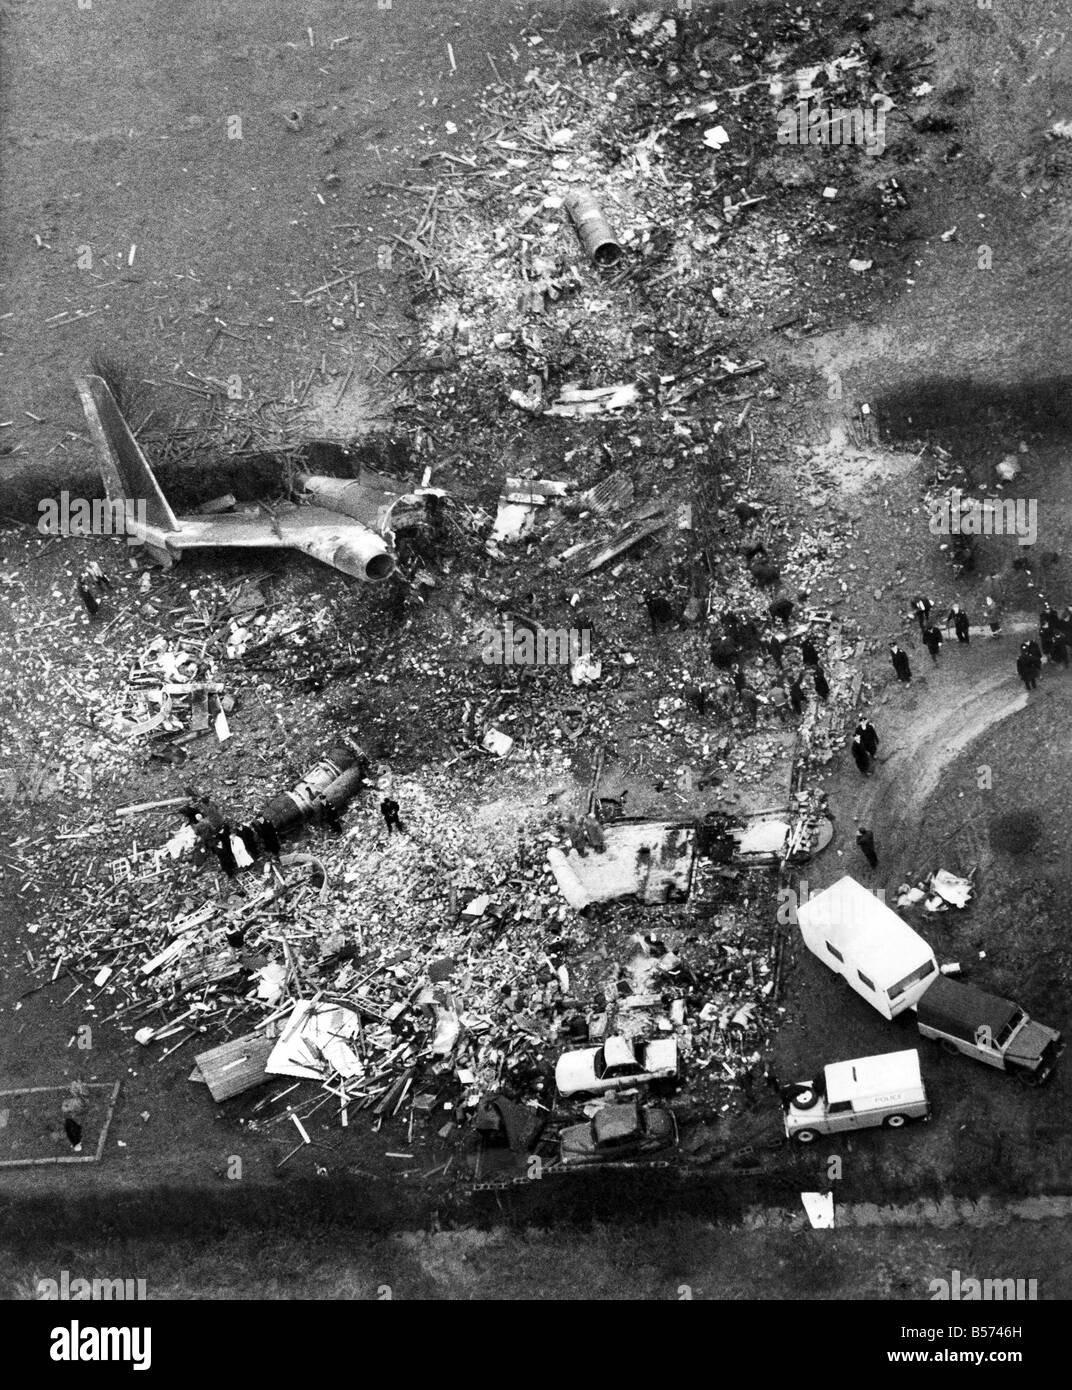 Air Accidents: A Boeing 727 of Ariana Afghan Airlines crashed on a house as it was coming in to land at Gatwick - Stock Image